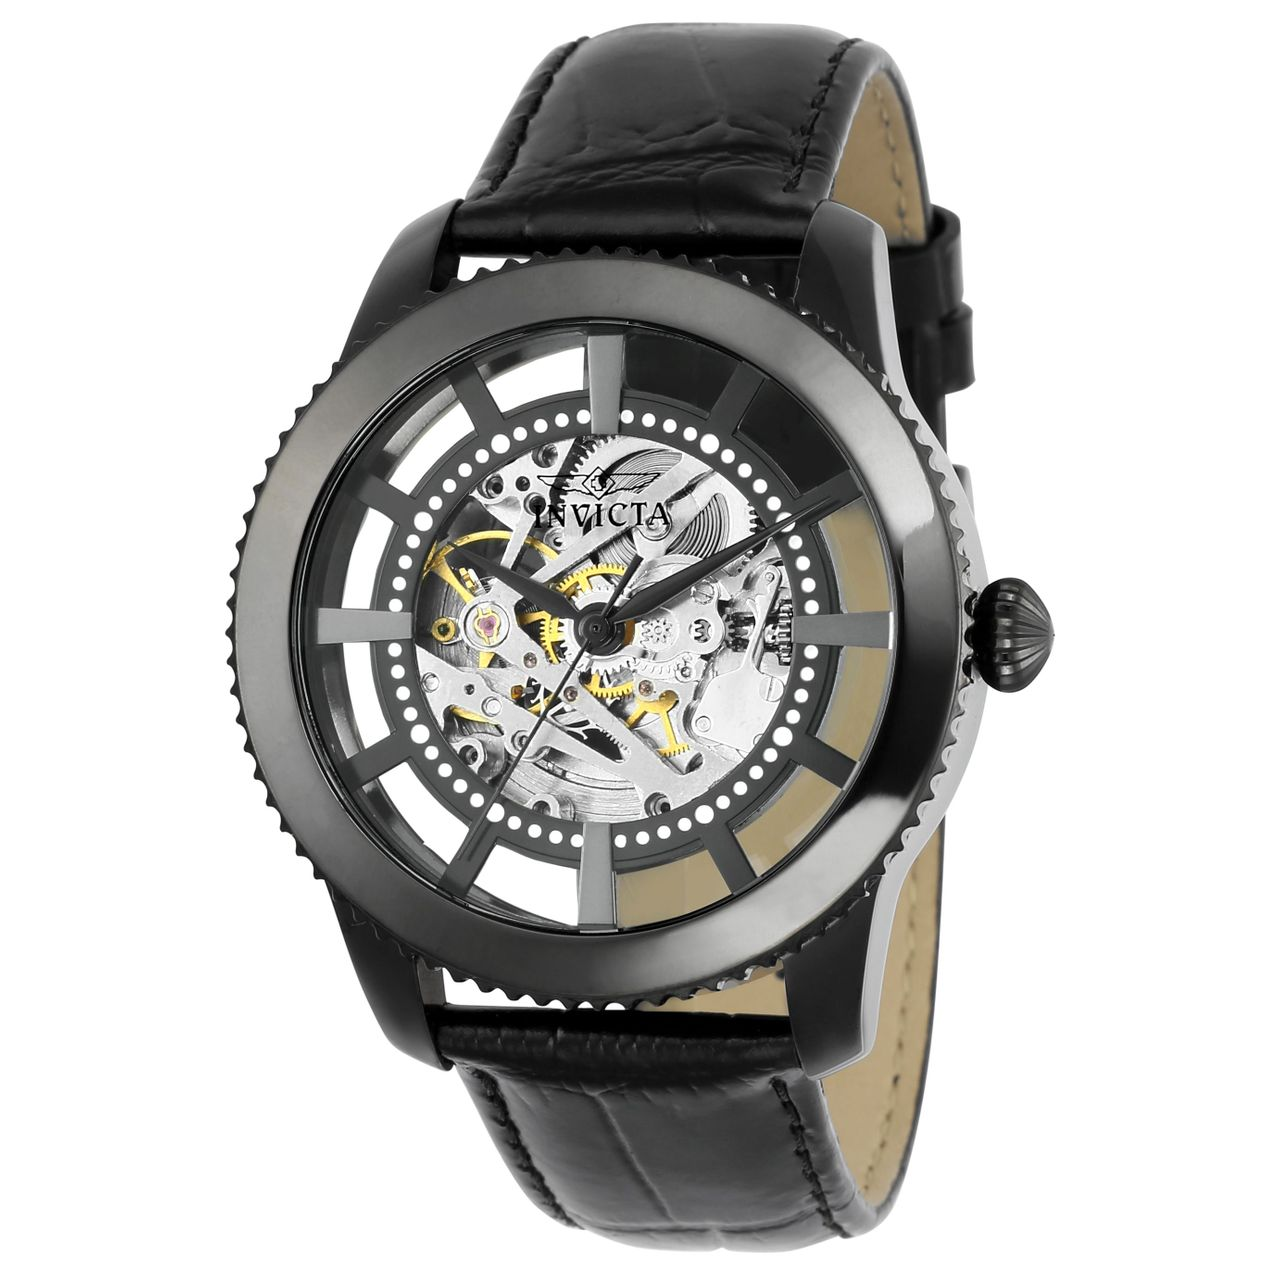 Invicta 22572 Mens Silver Dial Analog Automatic Watch